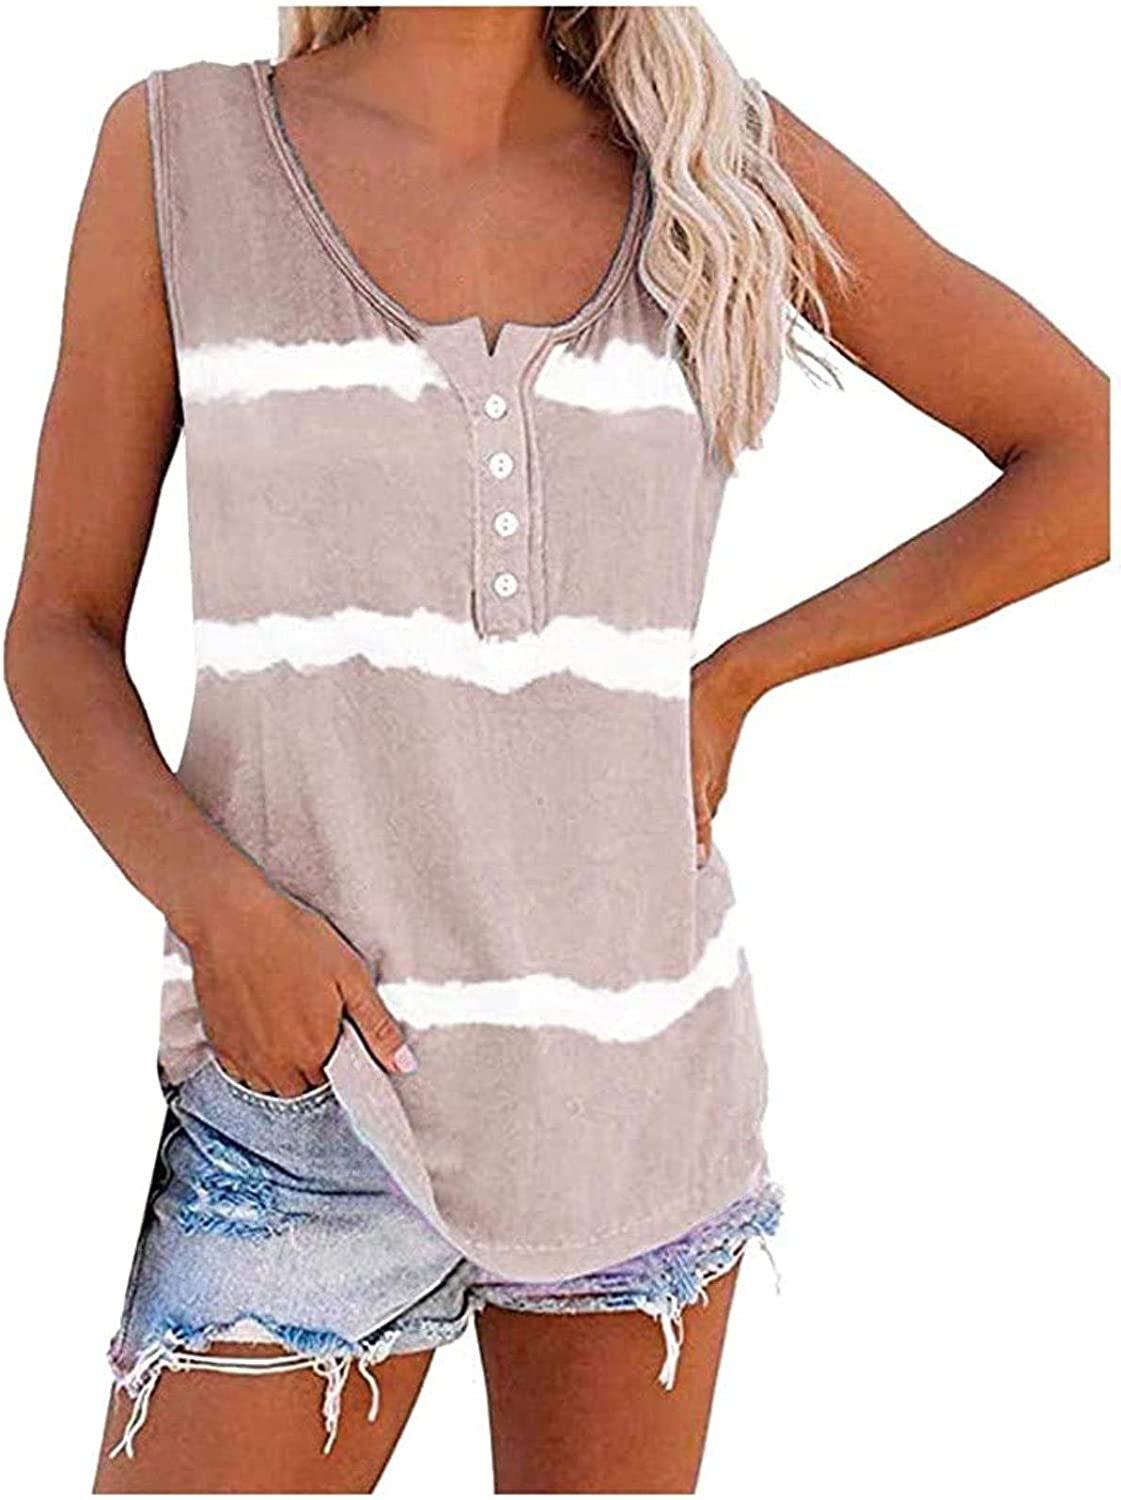 Women's Tie-Dye Max 83% OFF Scoop Neck San Diego Mall Sleeveless Summer Shirts Casual Loose